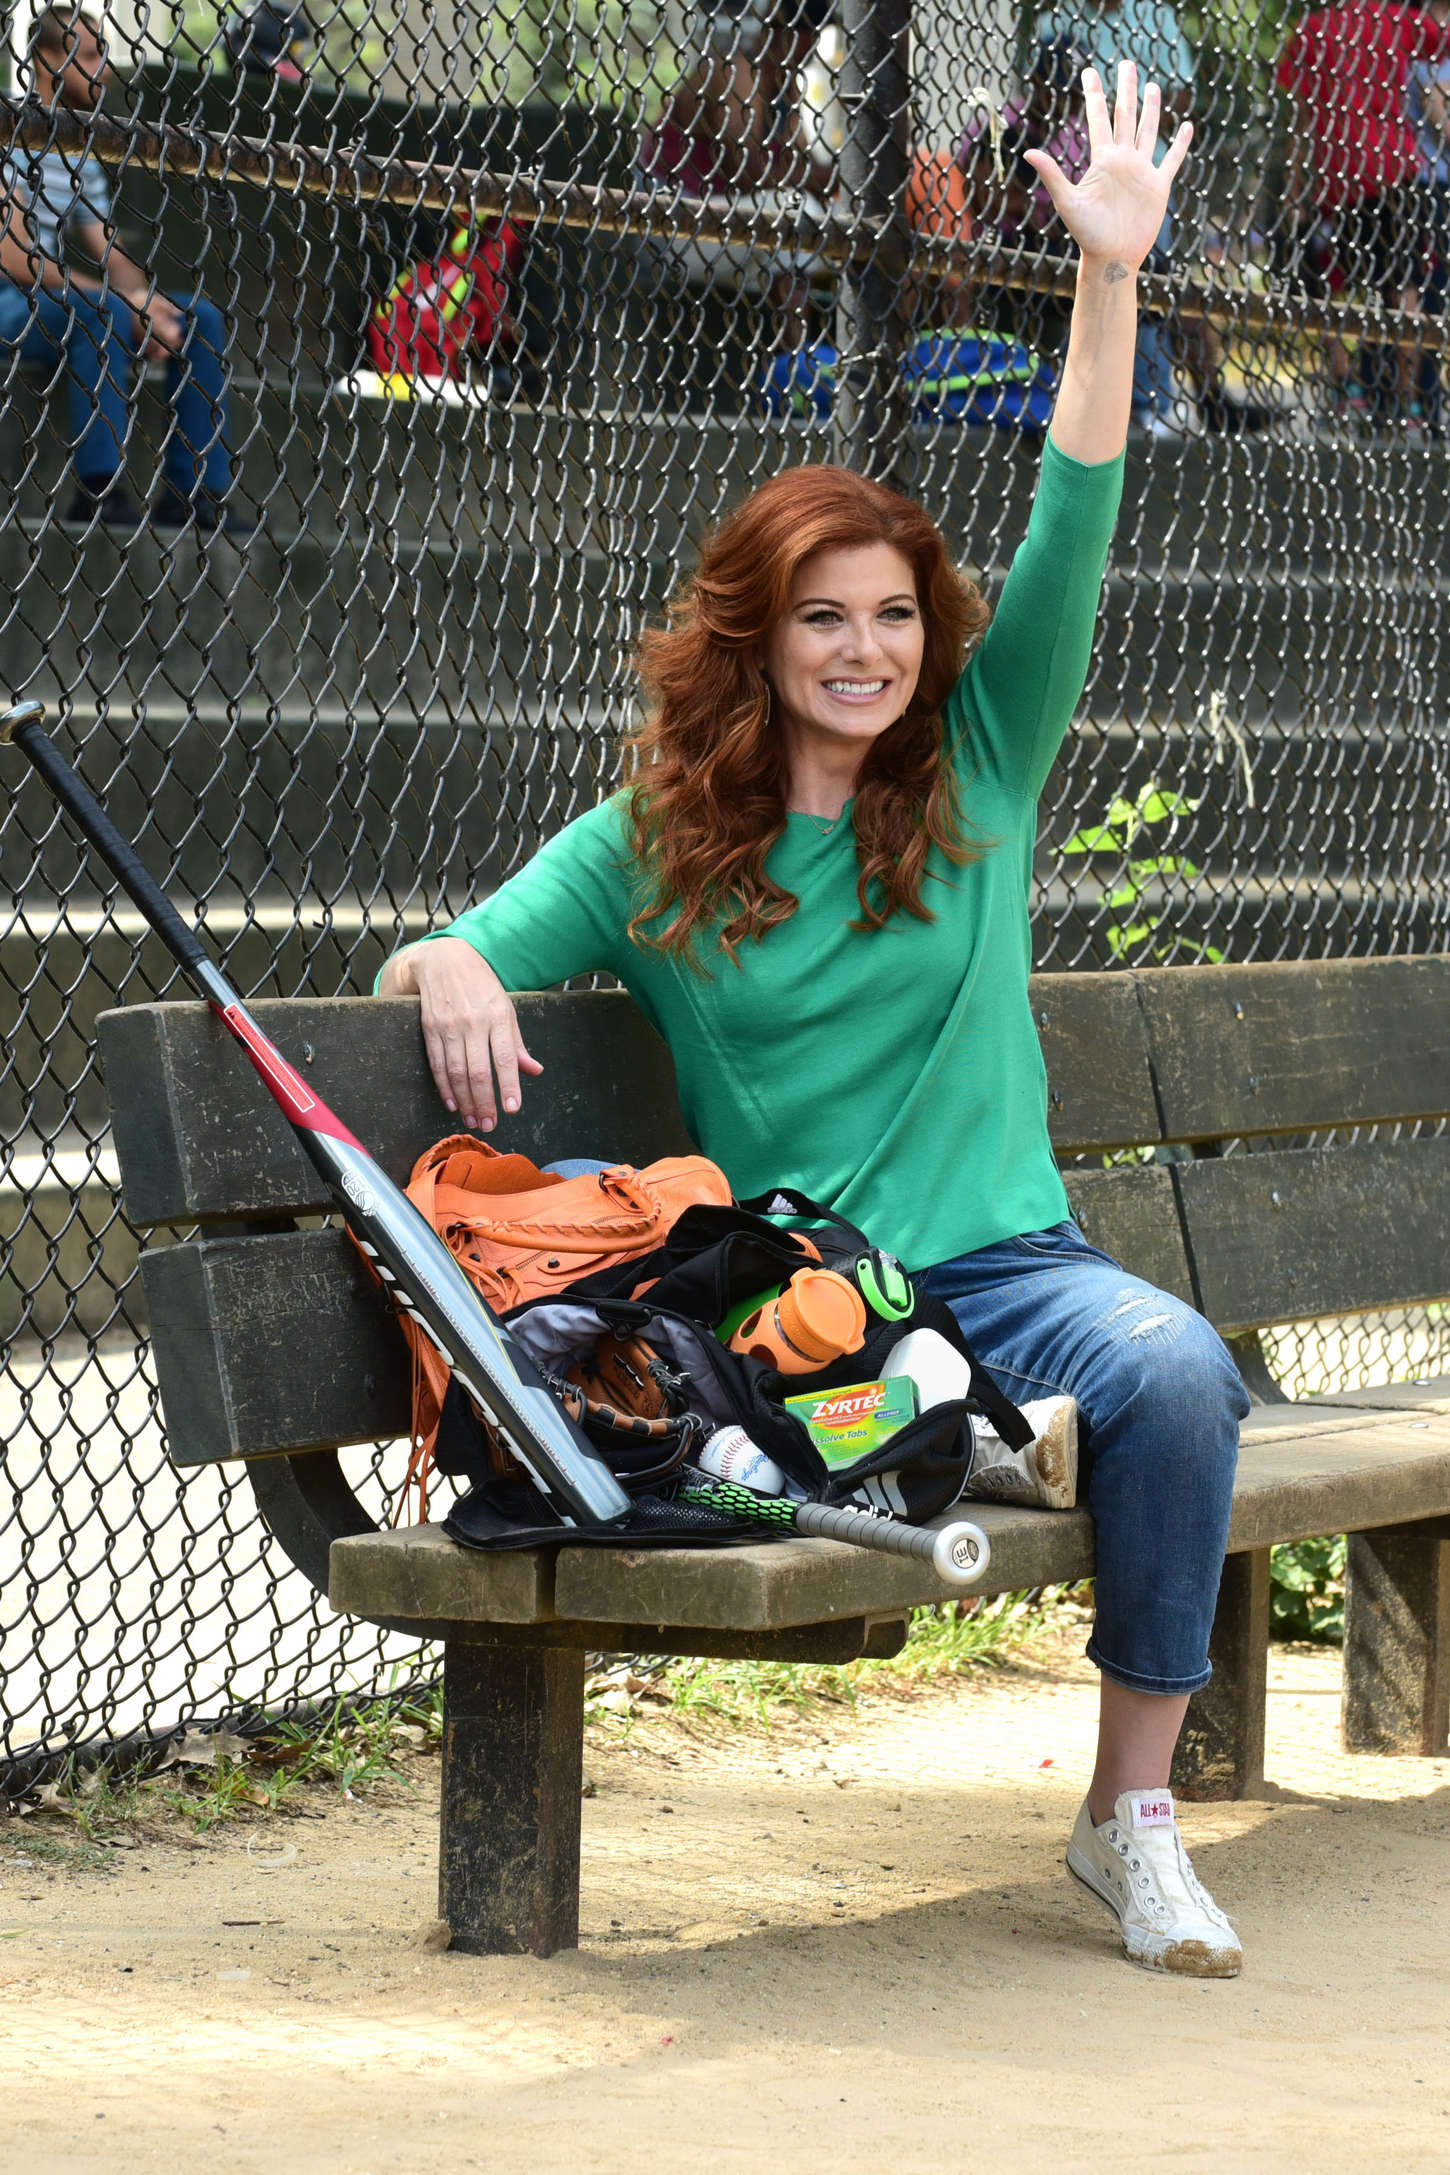 Debra Messing Baseball practice to watch her son in New York